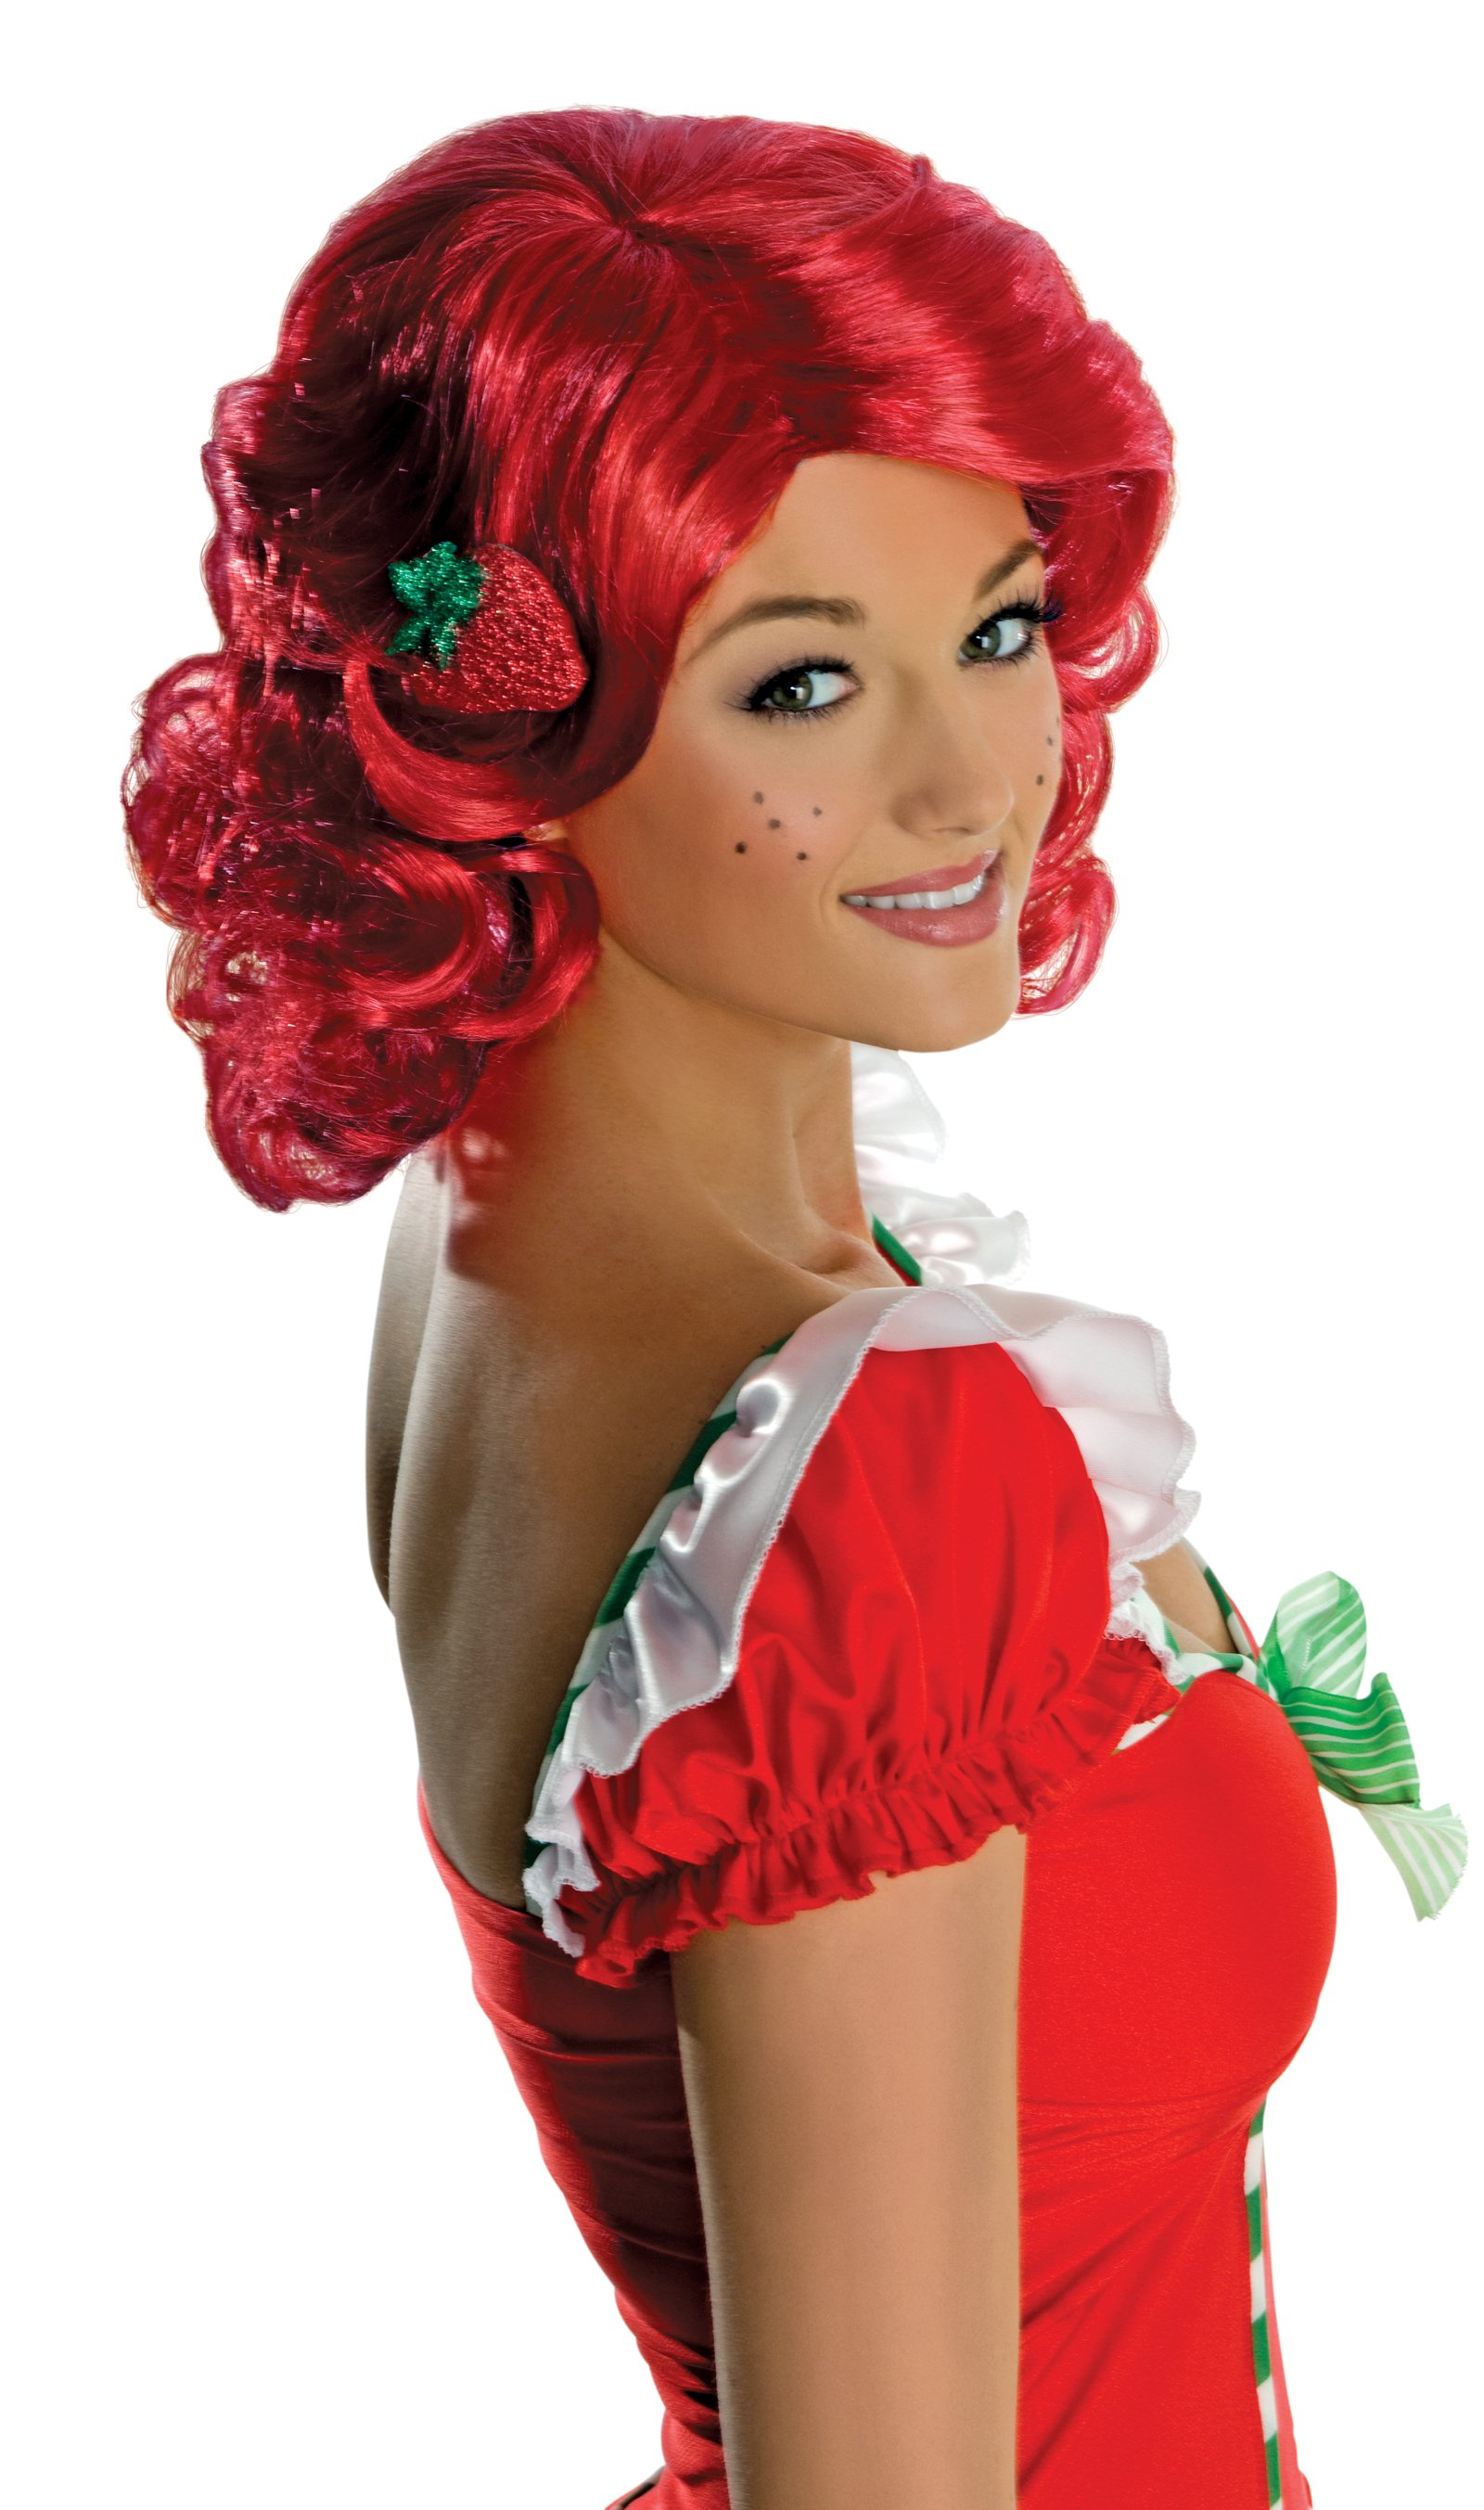 Strawberry Shortcake - Deluxe Strawberry Shortcake Wig (Adult)